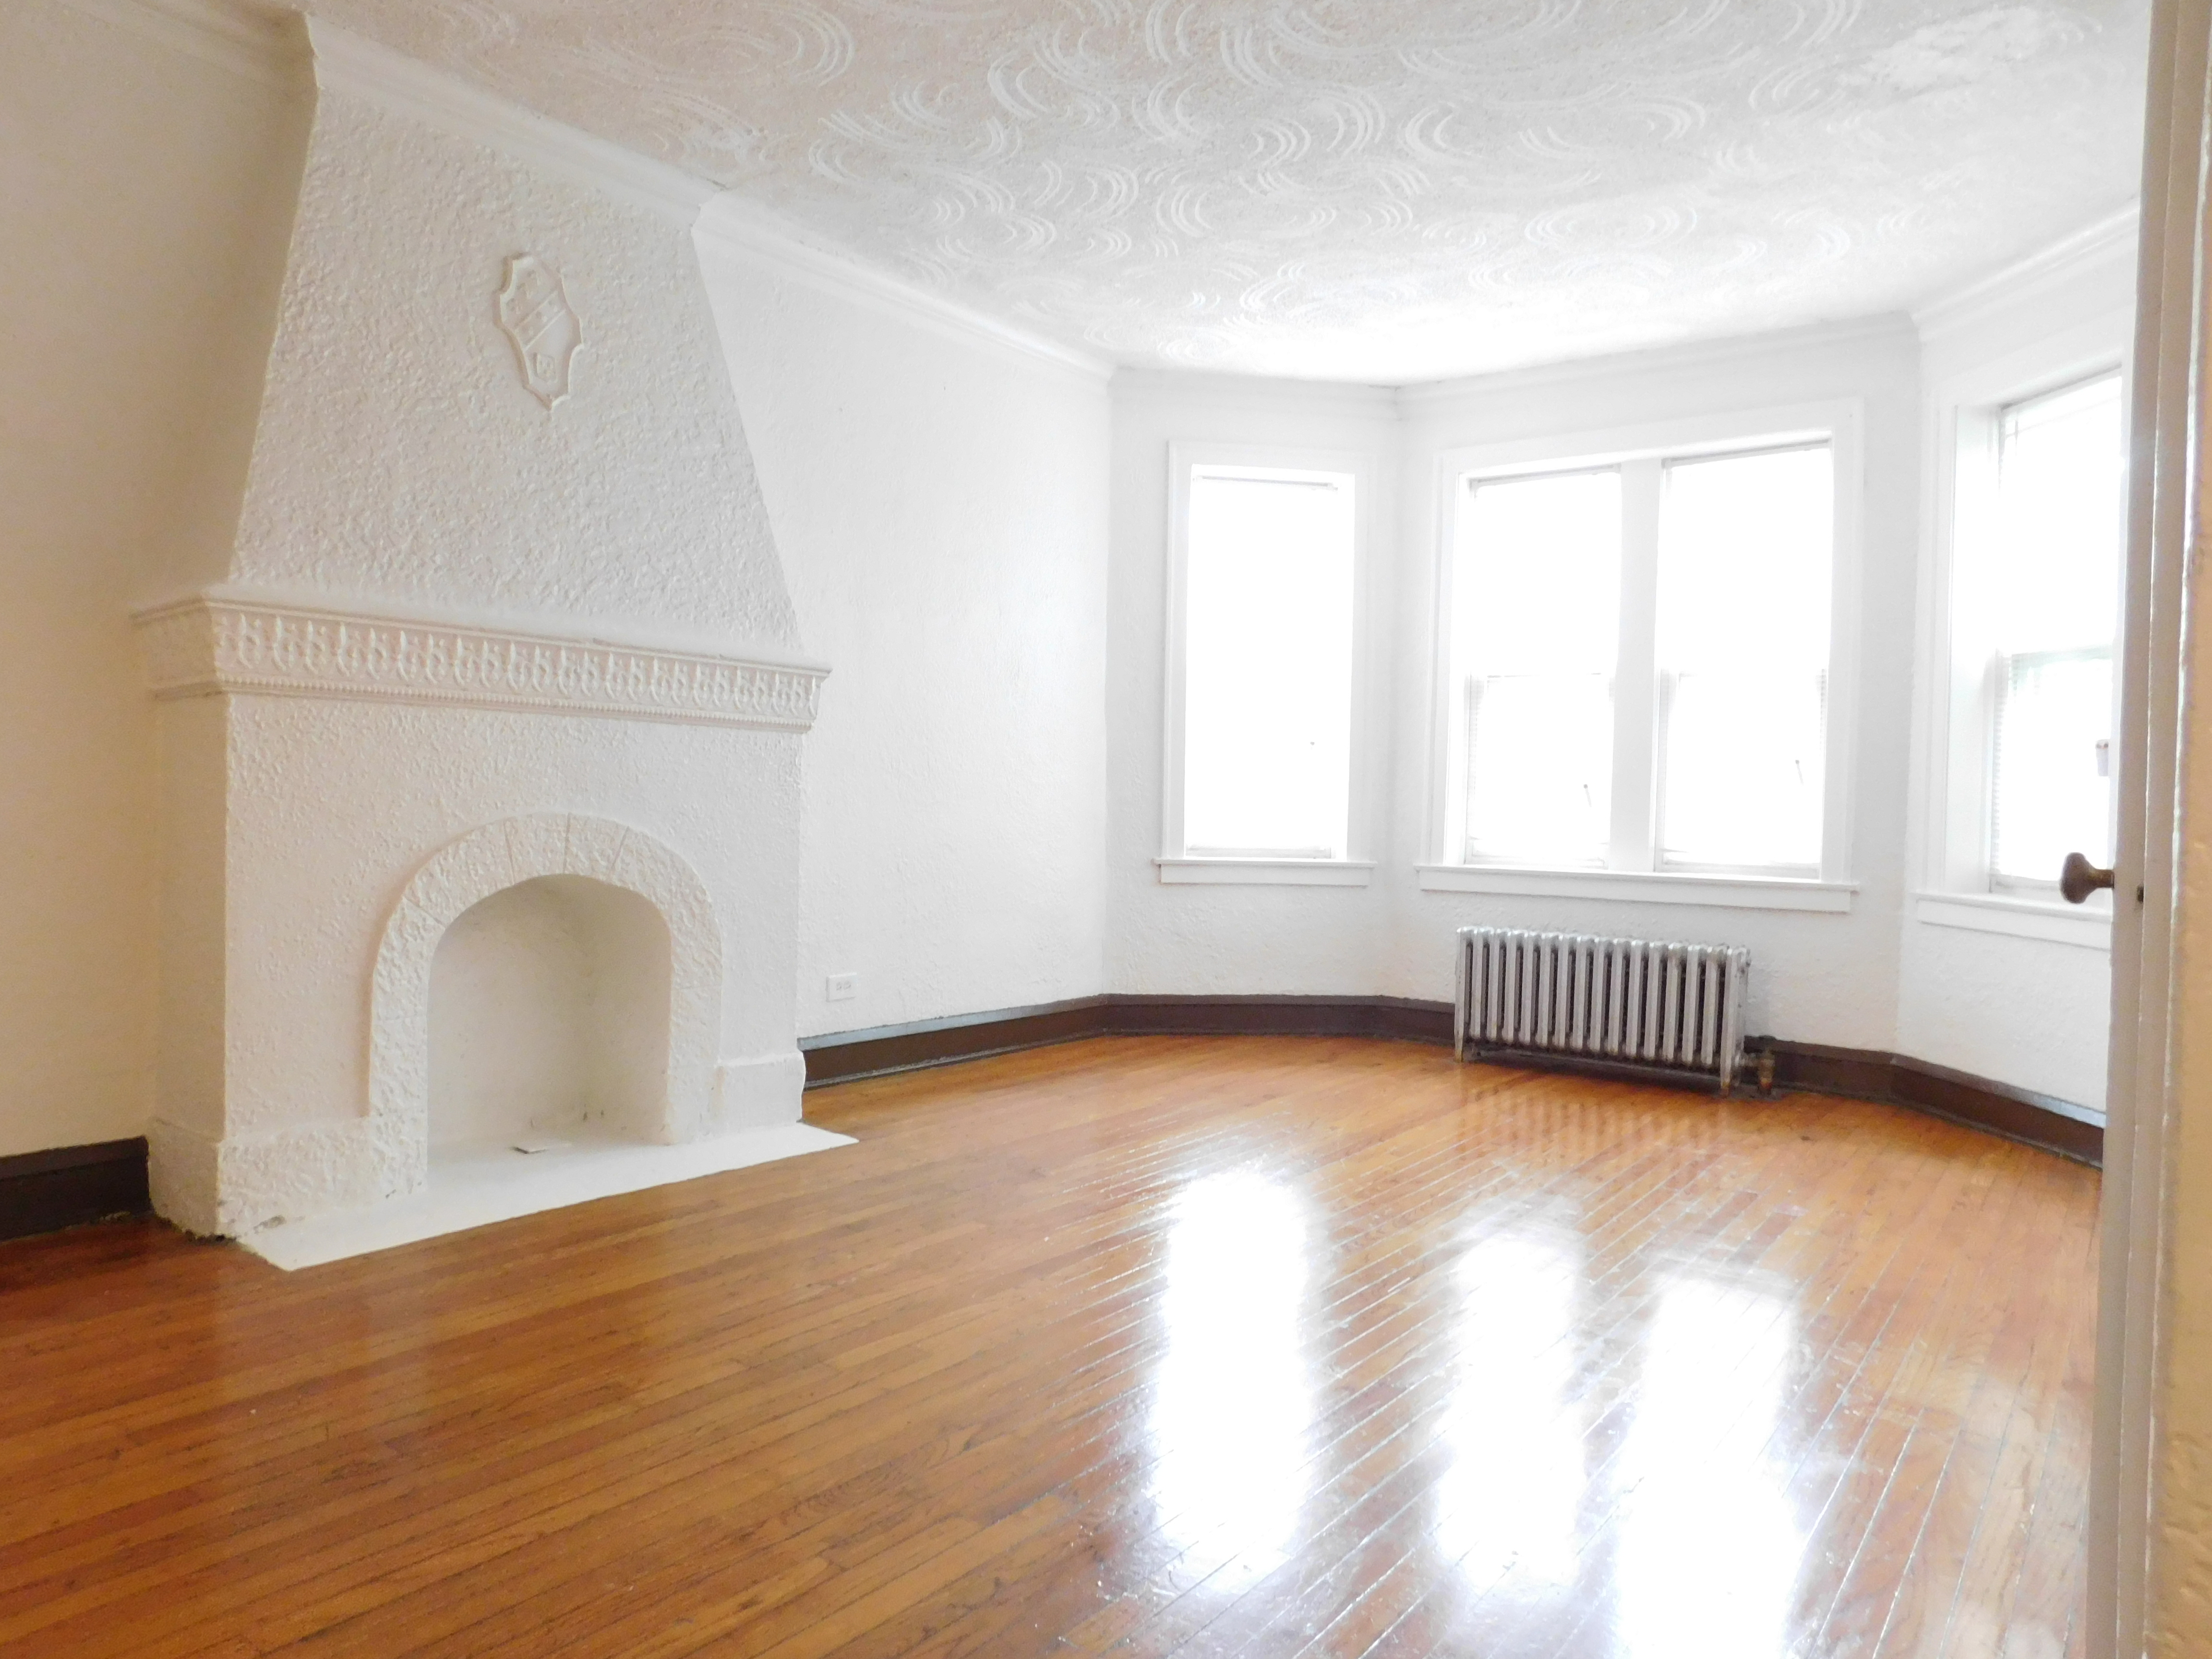 1 Bedroom apartment in Austin Chicago - Living room with decorative fireplace